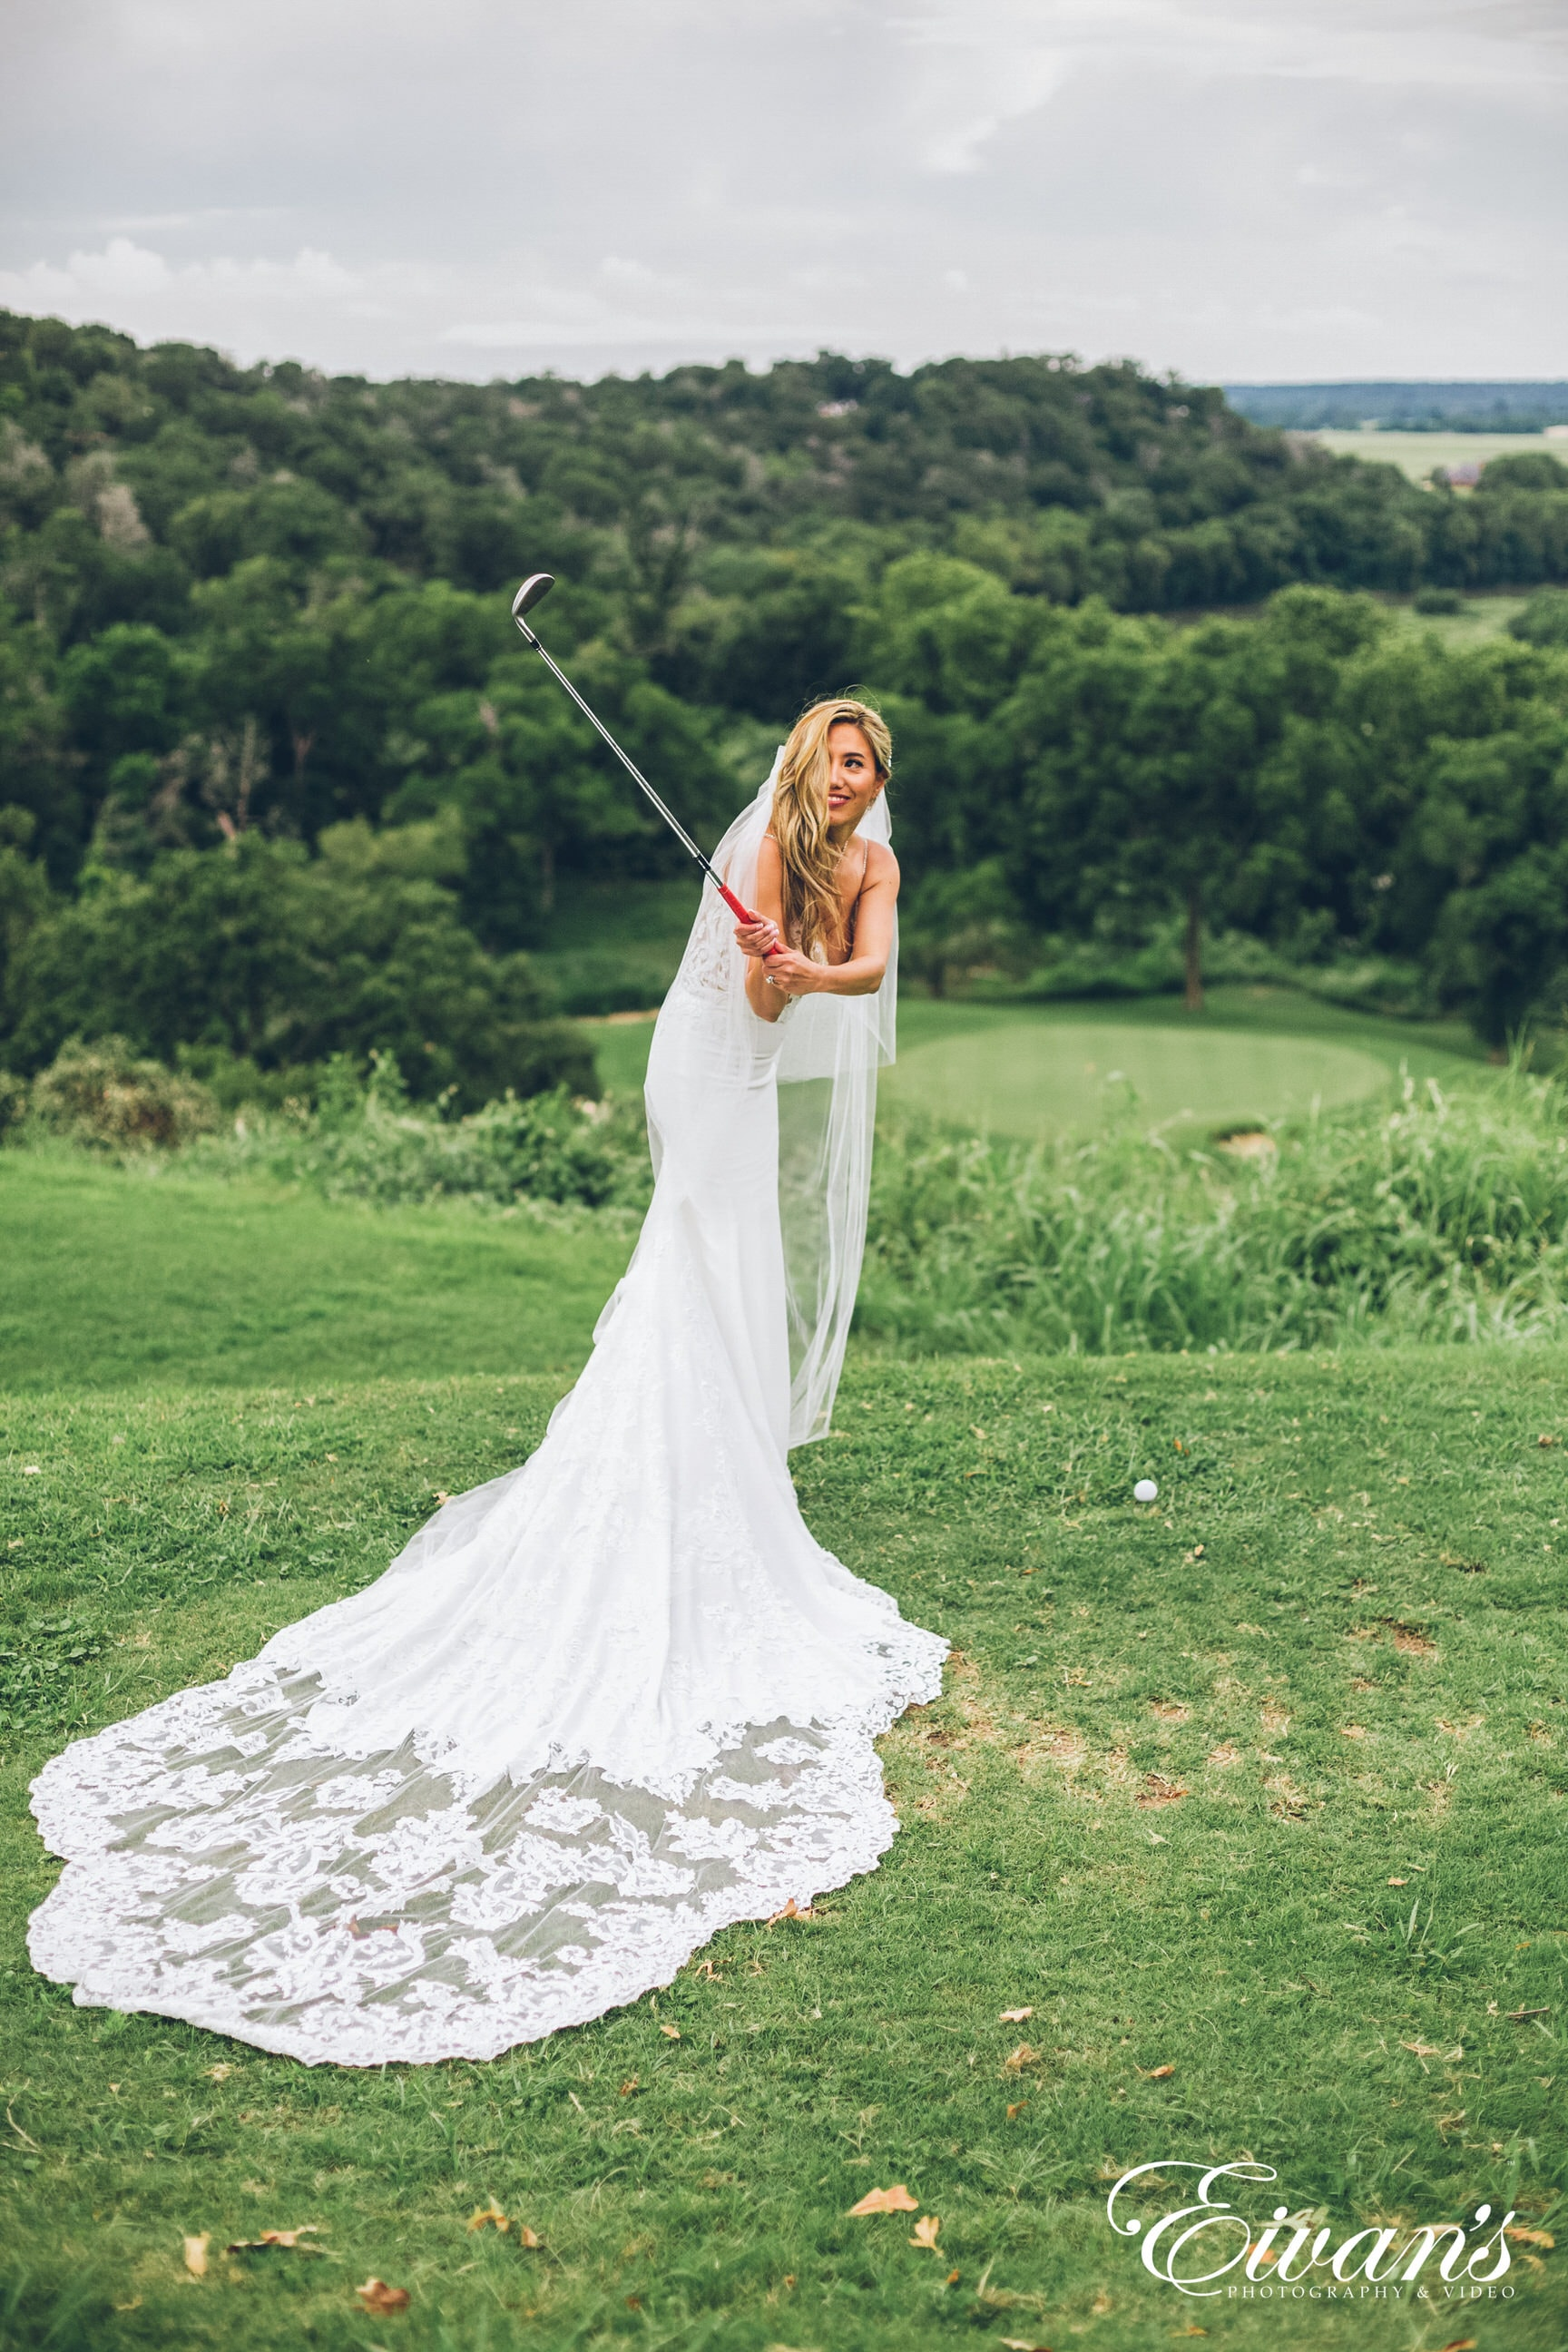 woman in white dress holding stick standing on green grass field during daytime